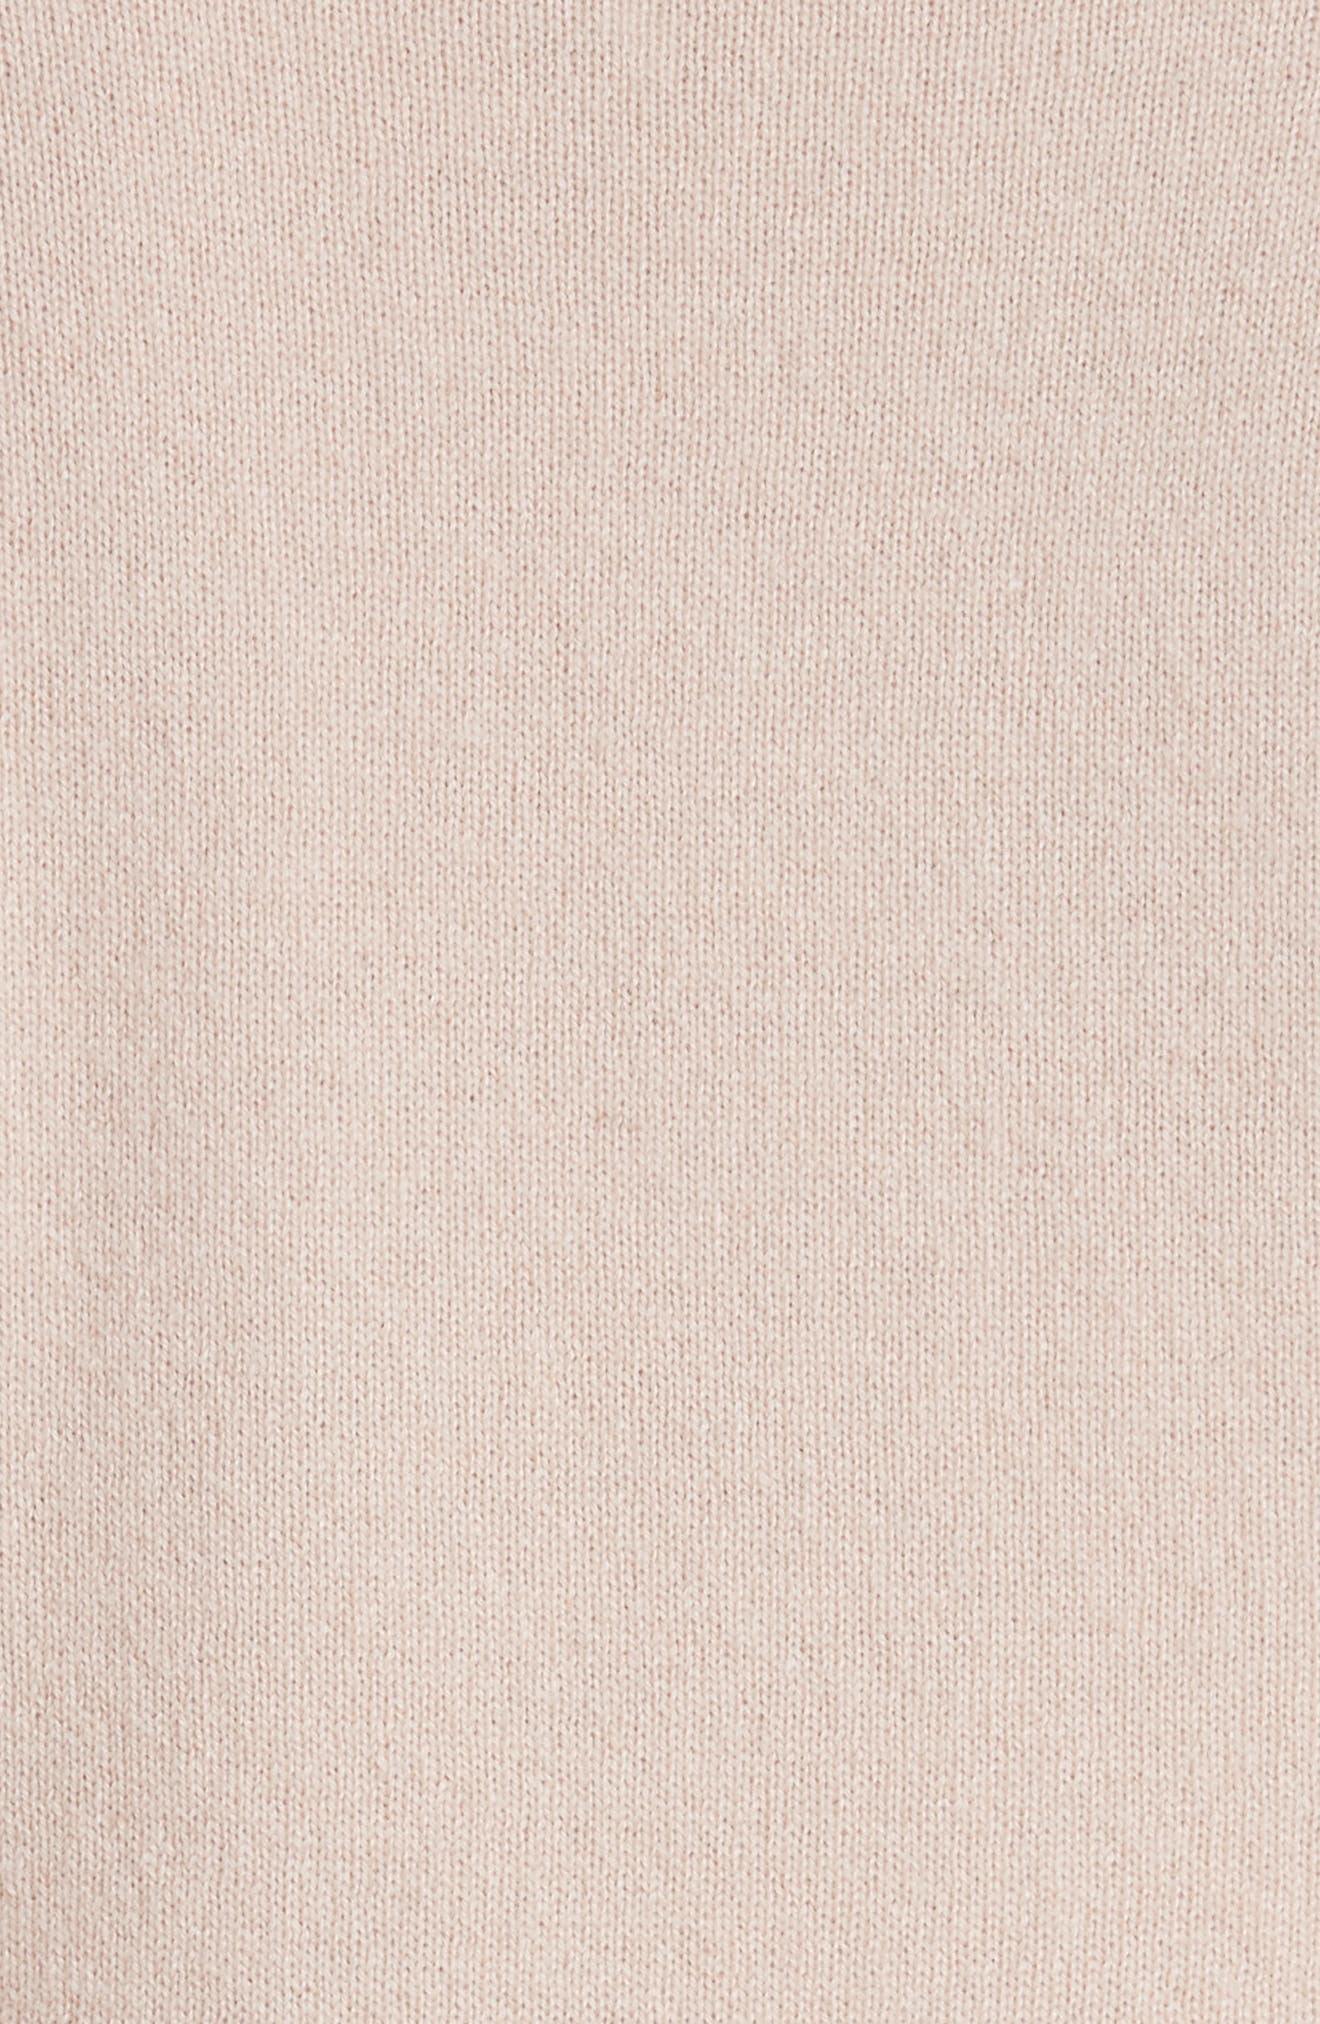 Cashmere Tee,                             Alternate thumbnail 5, color,                             Fawn